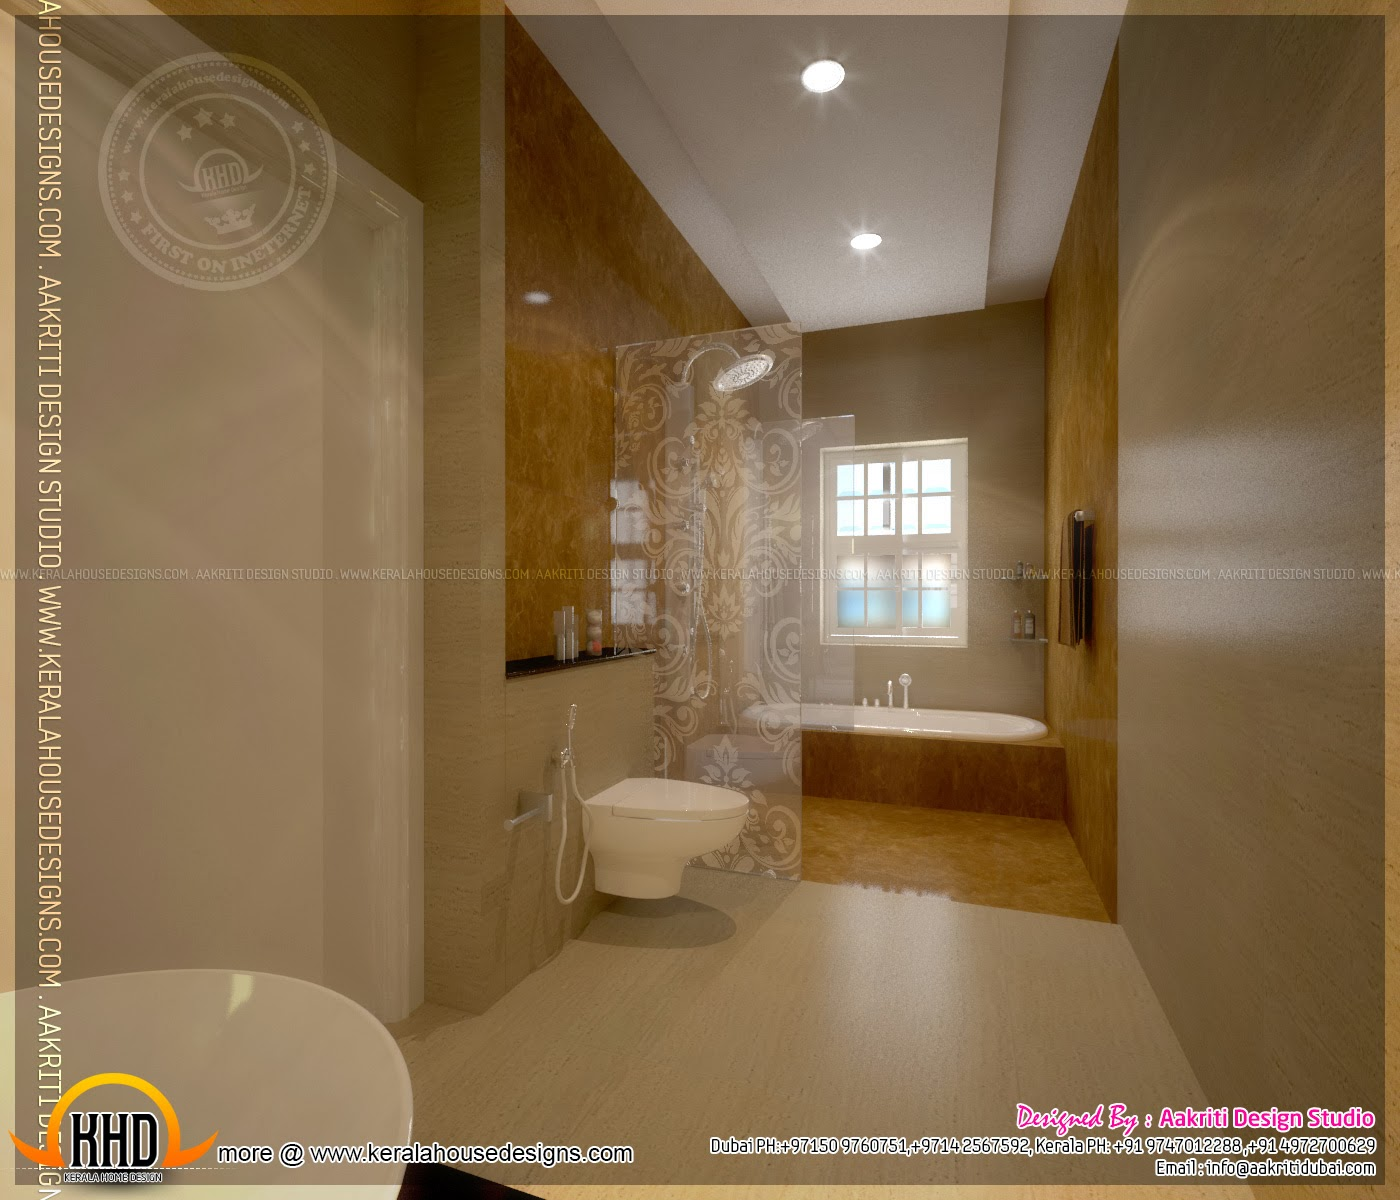 Master bedroom and bathroom interior design kerala home design and floor plans Bathroom design jobs dubai